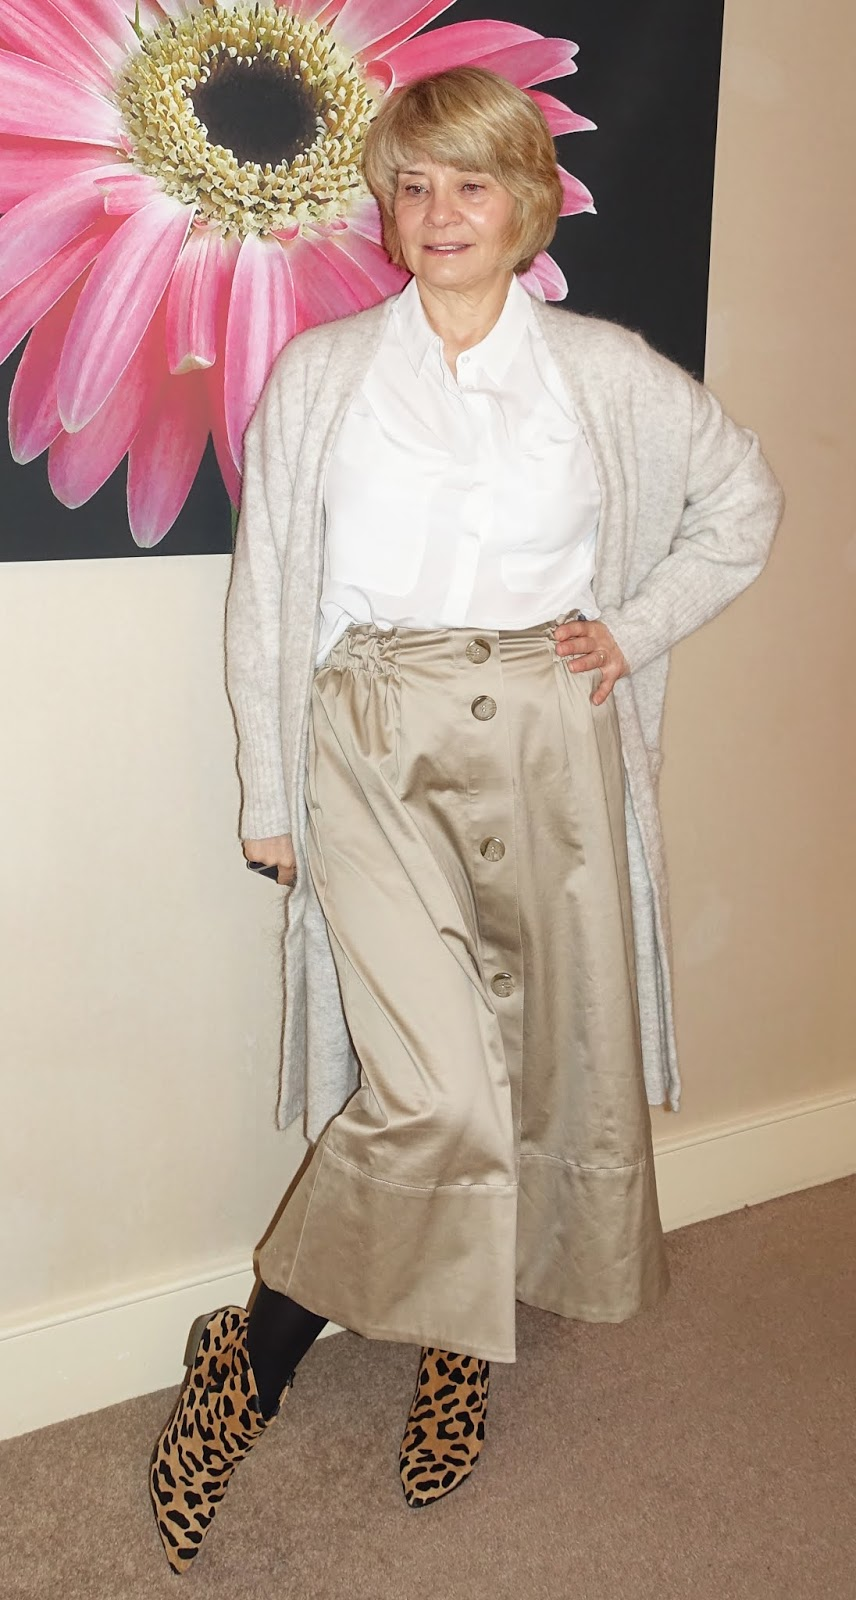 A fawn midi skirt worn with white silk blouse and long ivory cardigan and leopard print boots